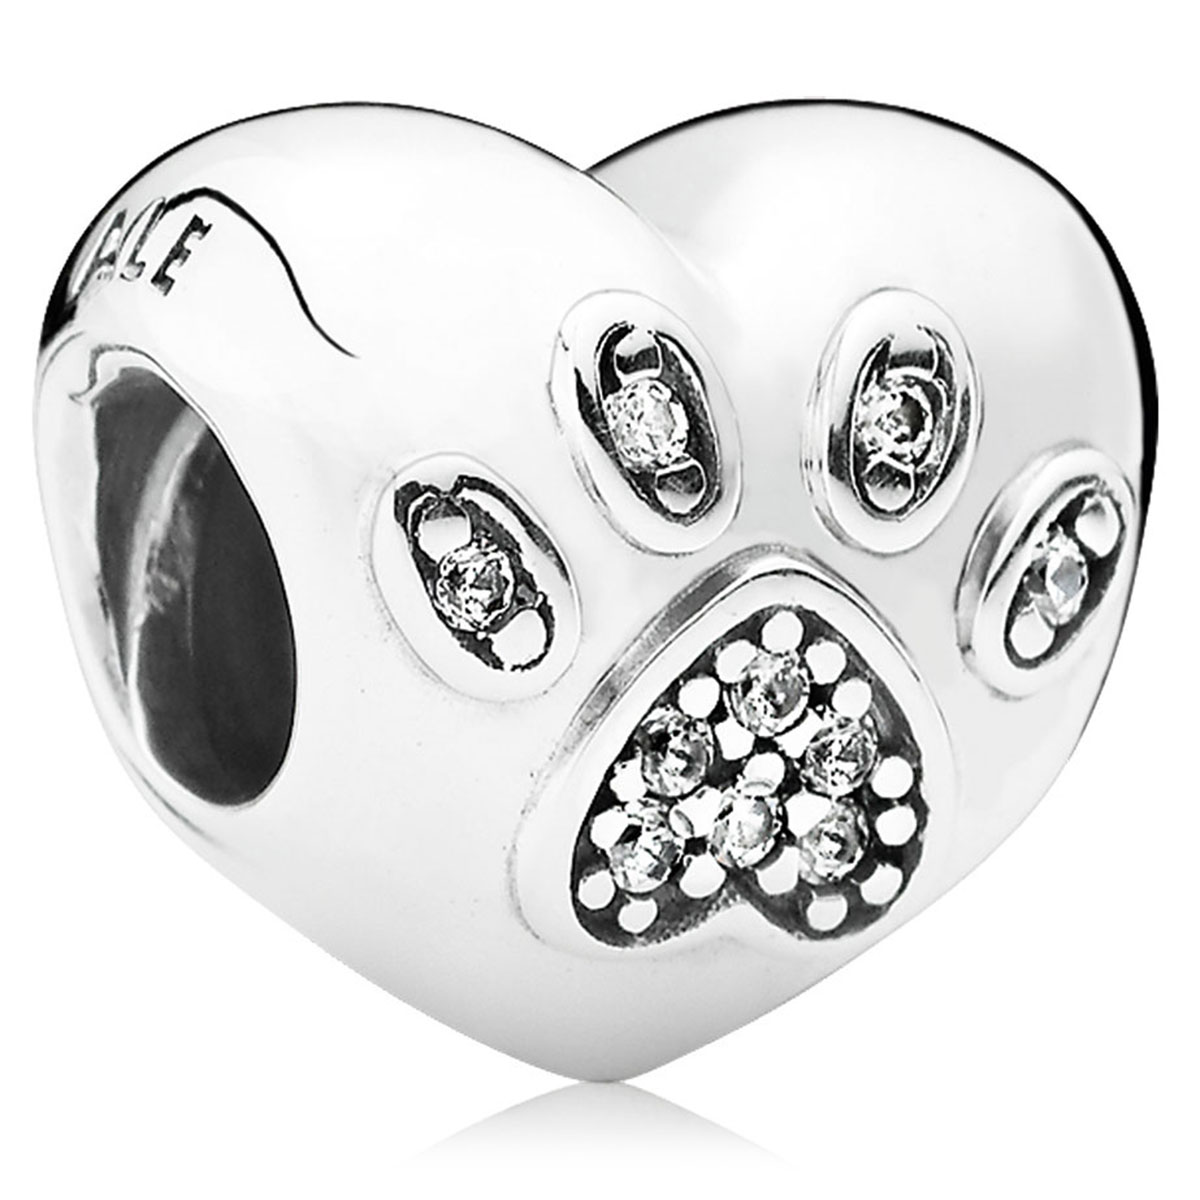 802-3037-PANDORA I Love My Pet Charm